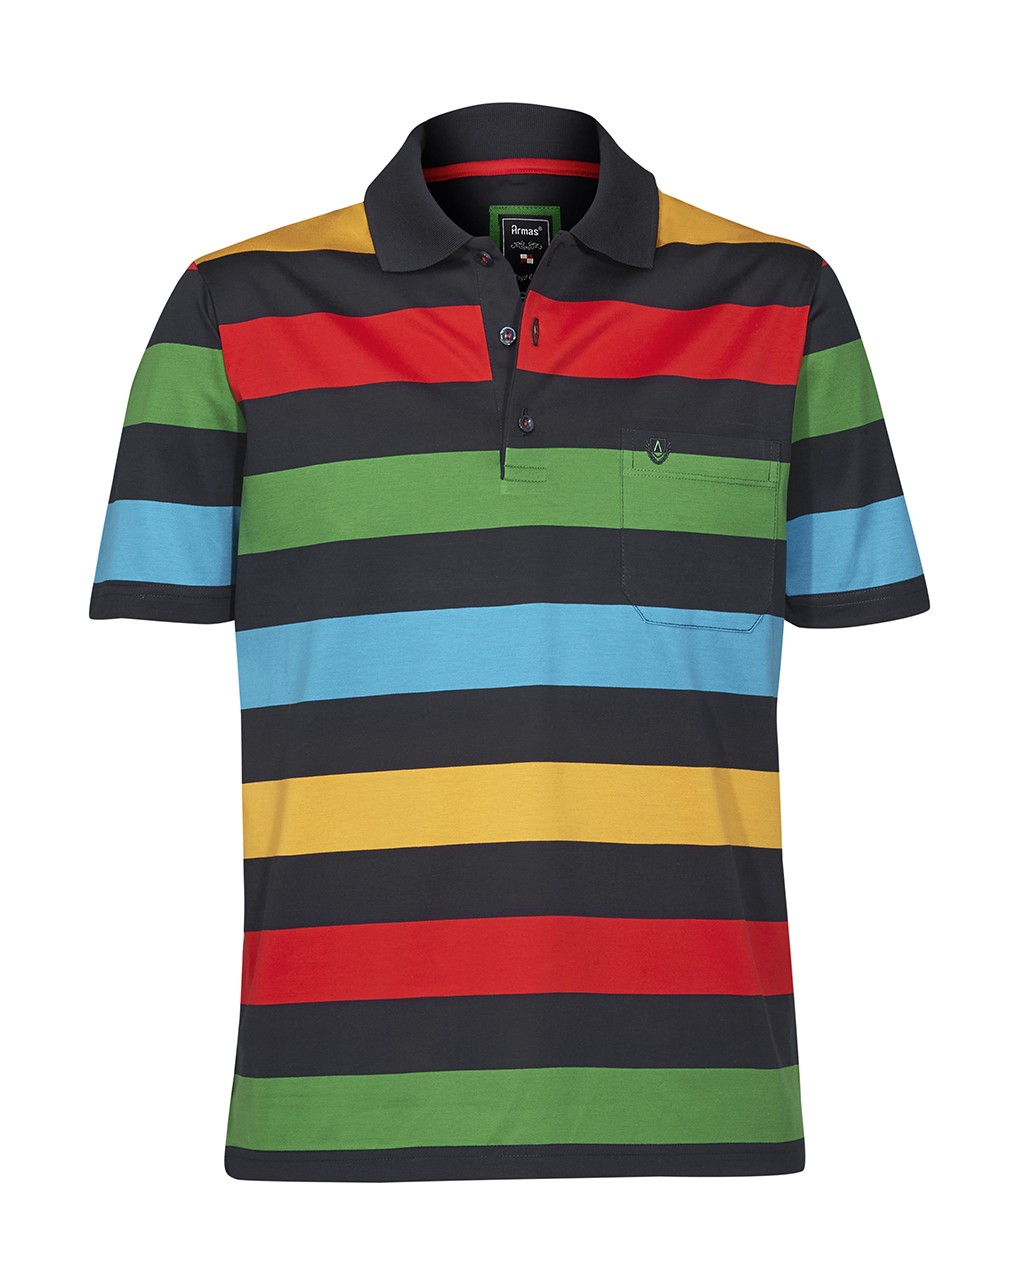 NEU: Polo Shirt Kurzarm